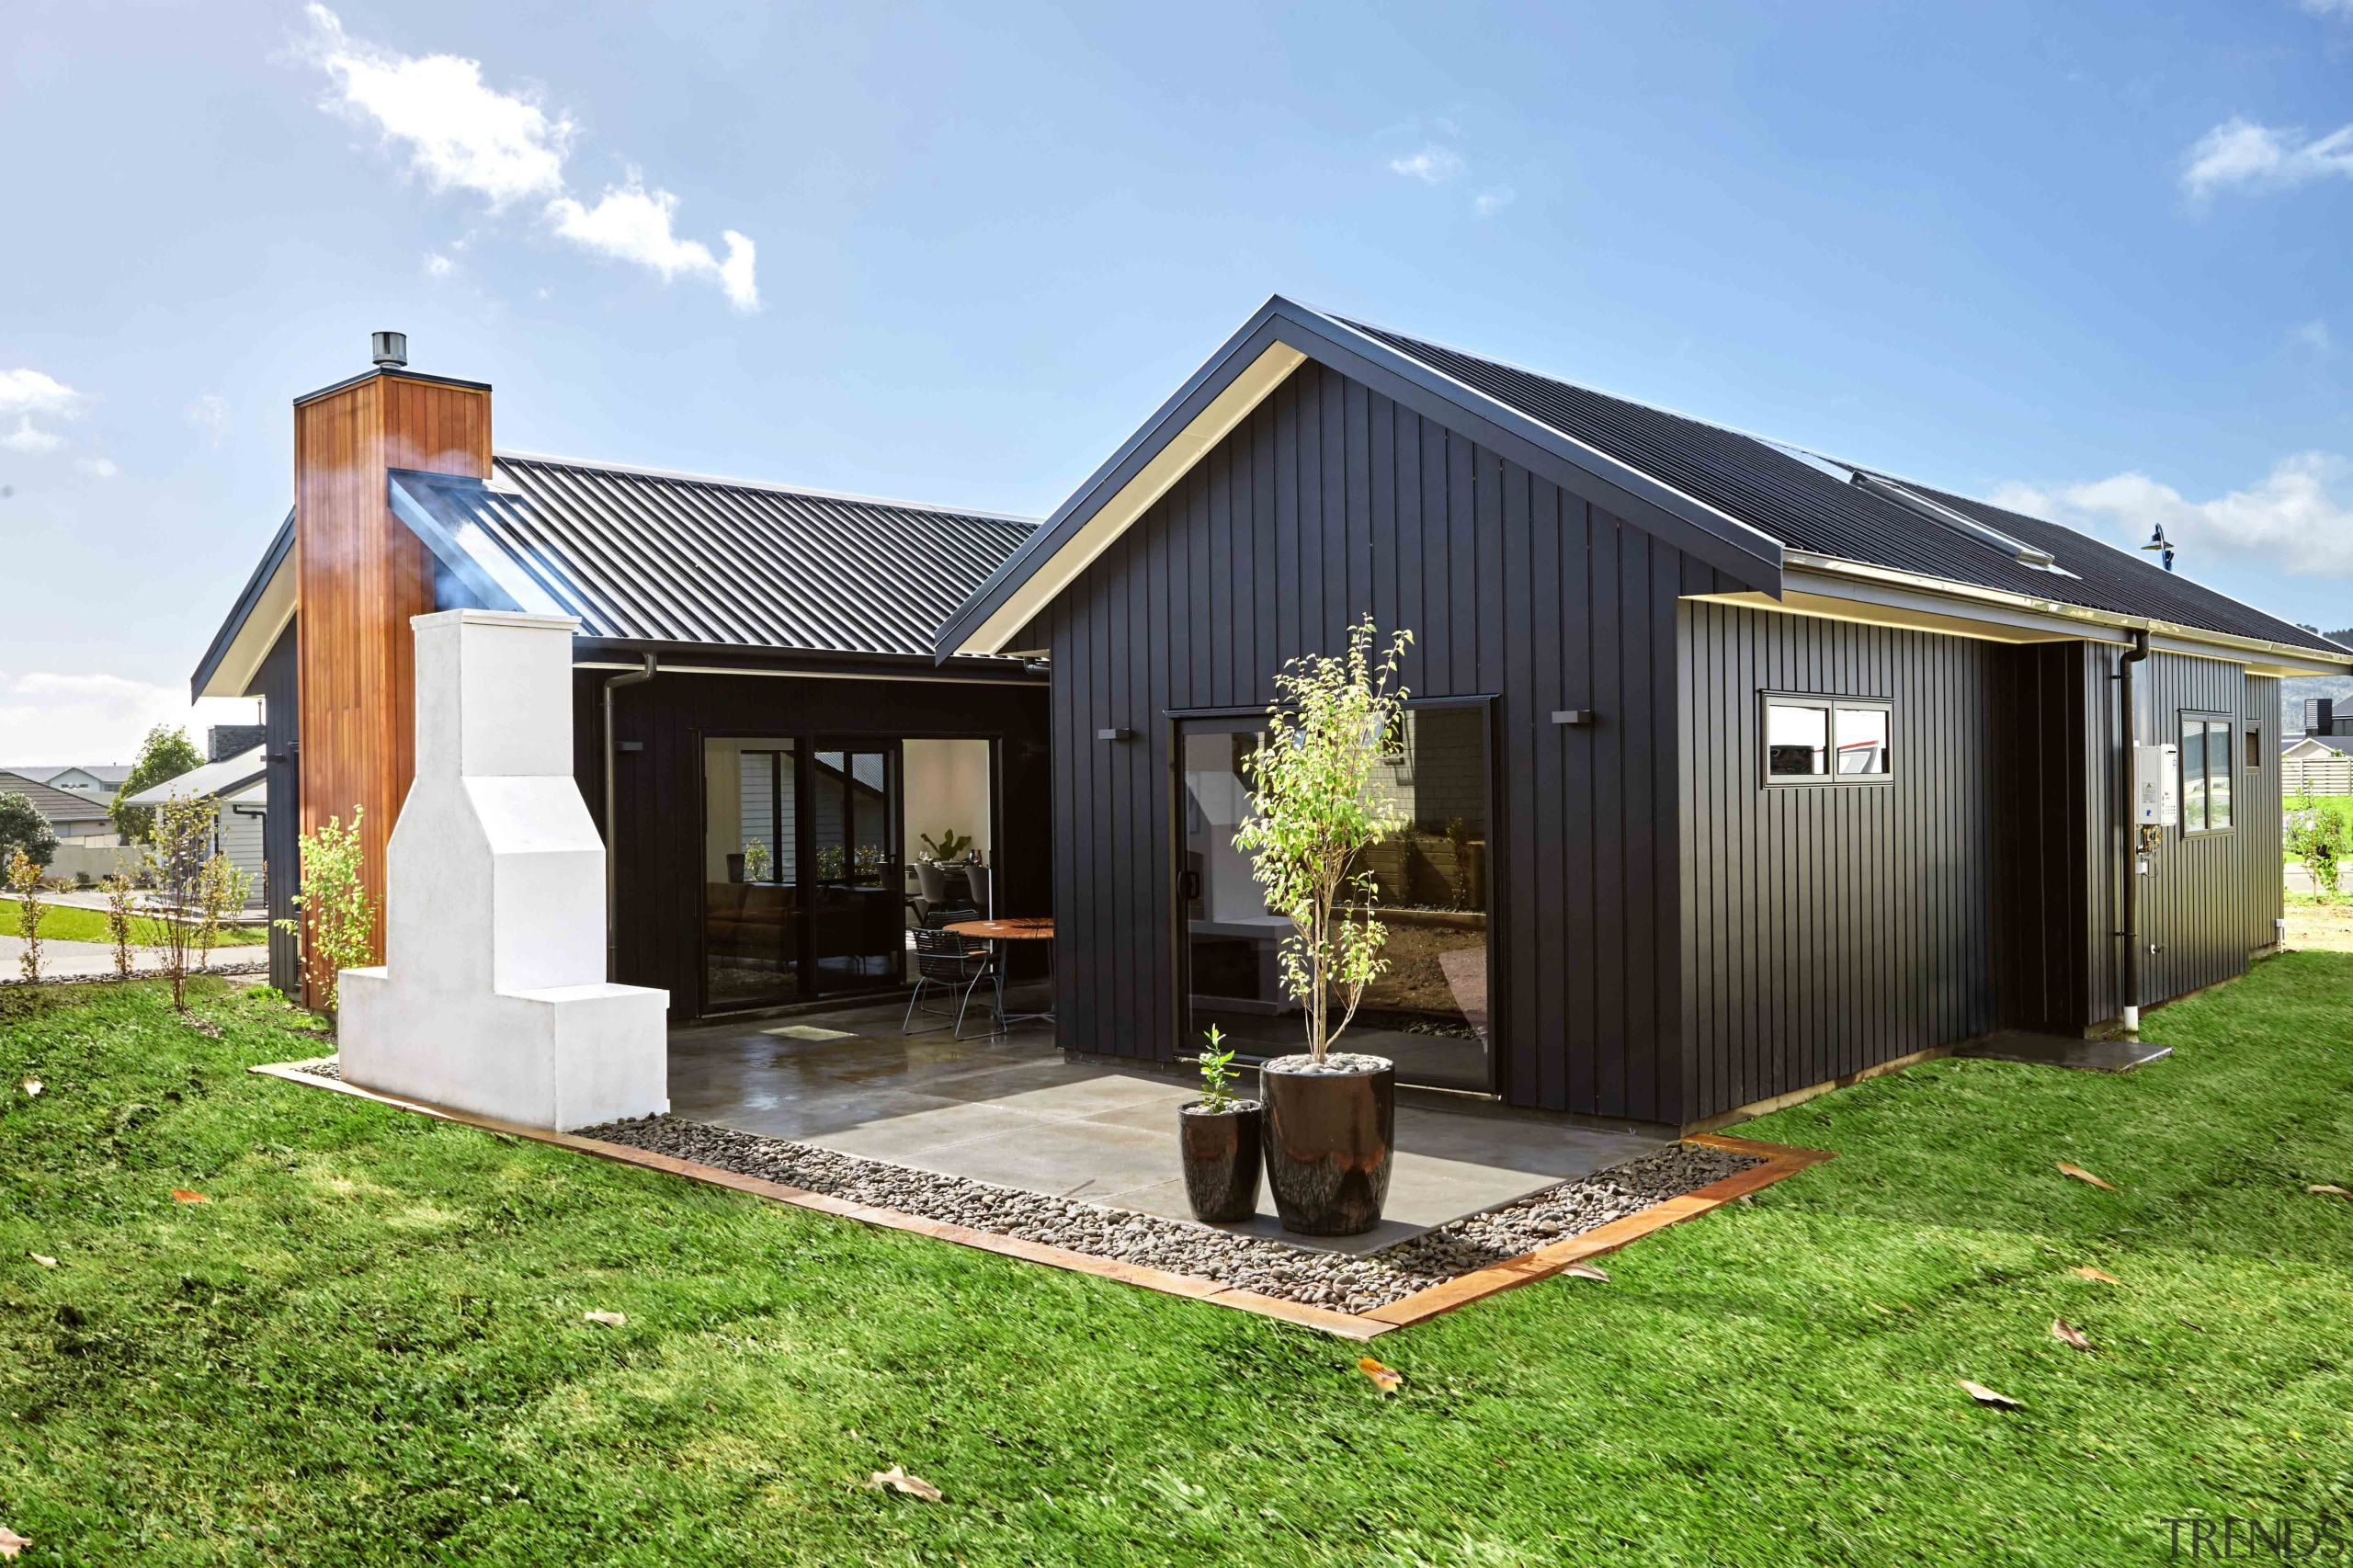 James Hardie Weatherboard - James Hardie Weatherboard - backyard, cottage, facade, farmhouse, home, house, property, real estate, shed, teal